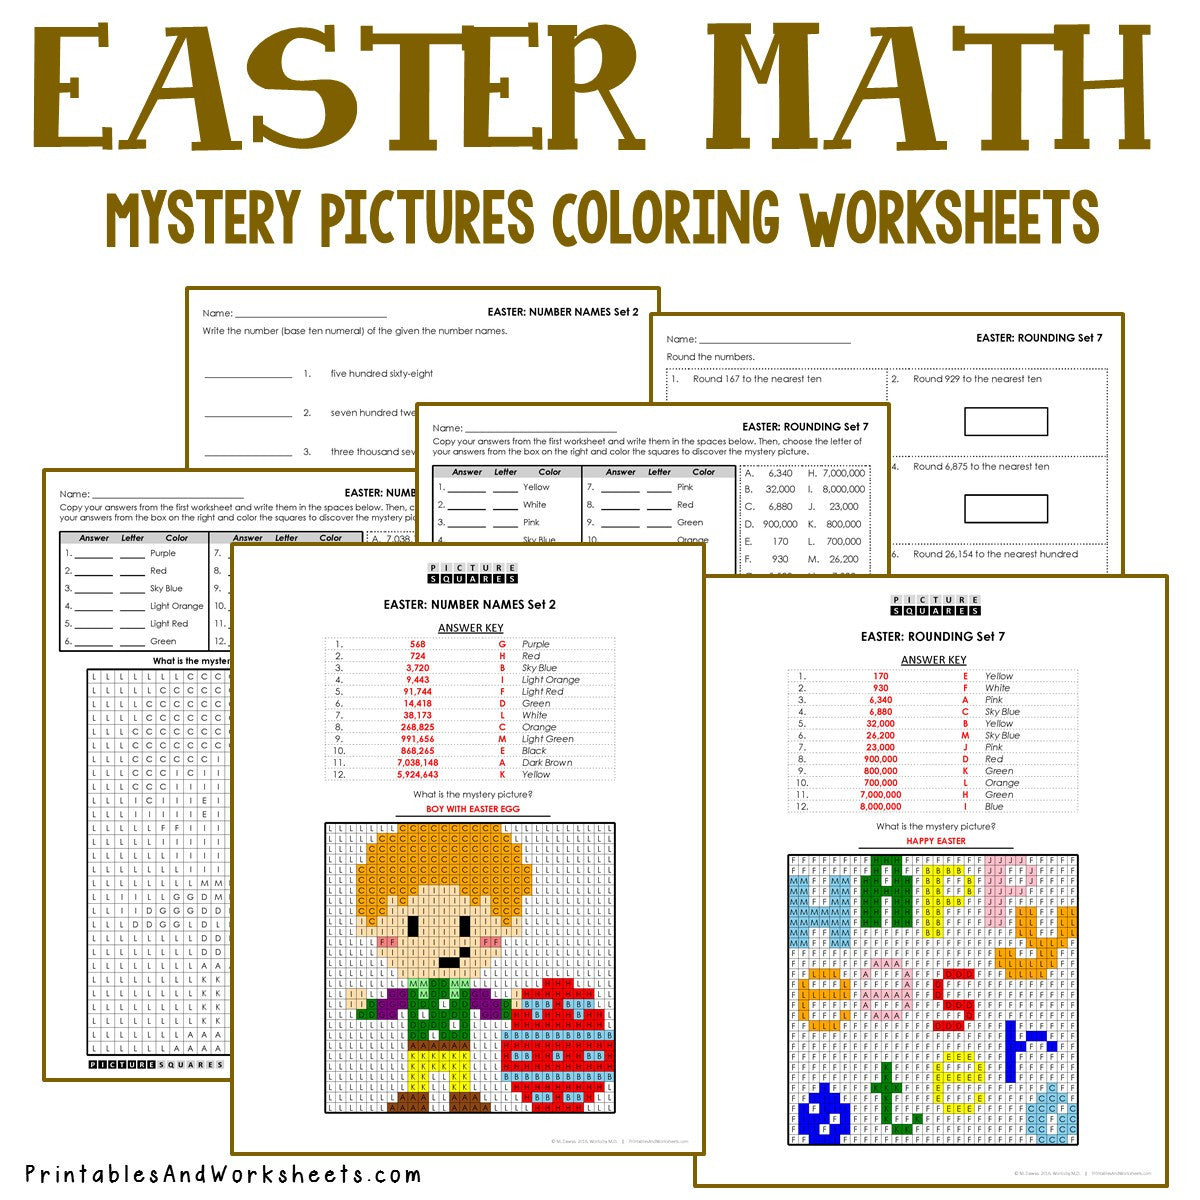 Easter Coloring Worksheets -  Place Value, Expanded Form, Number Names, Rounding